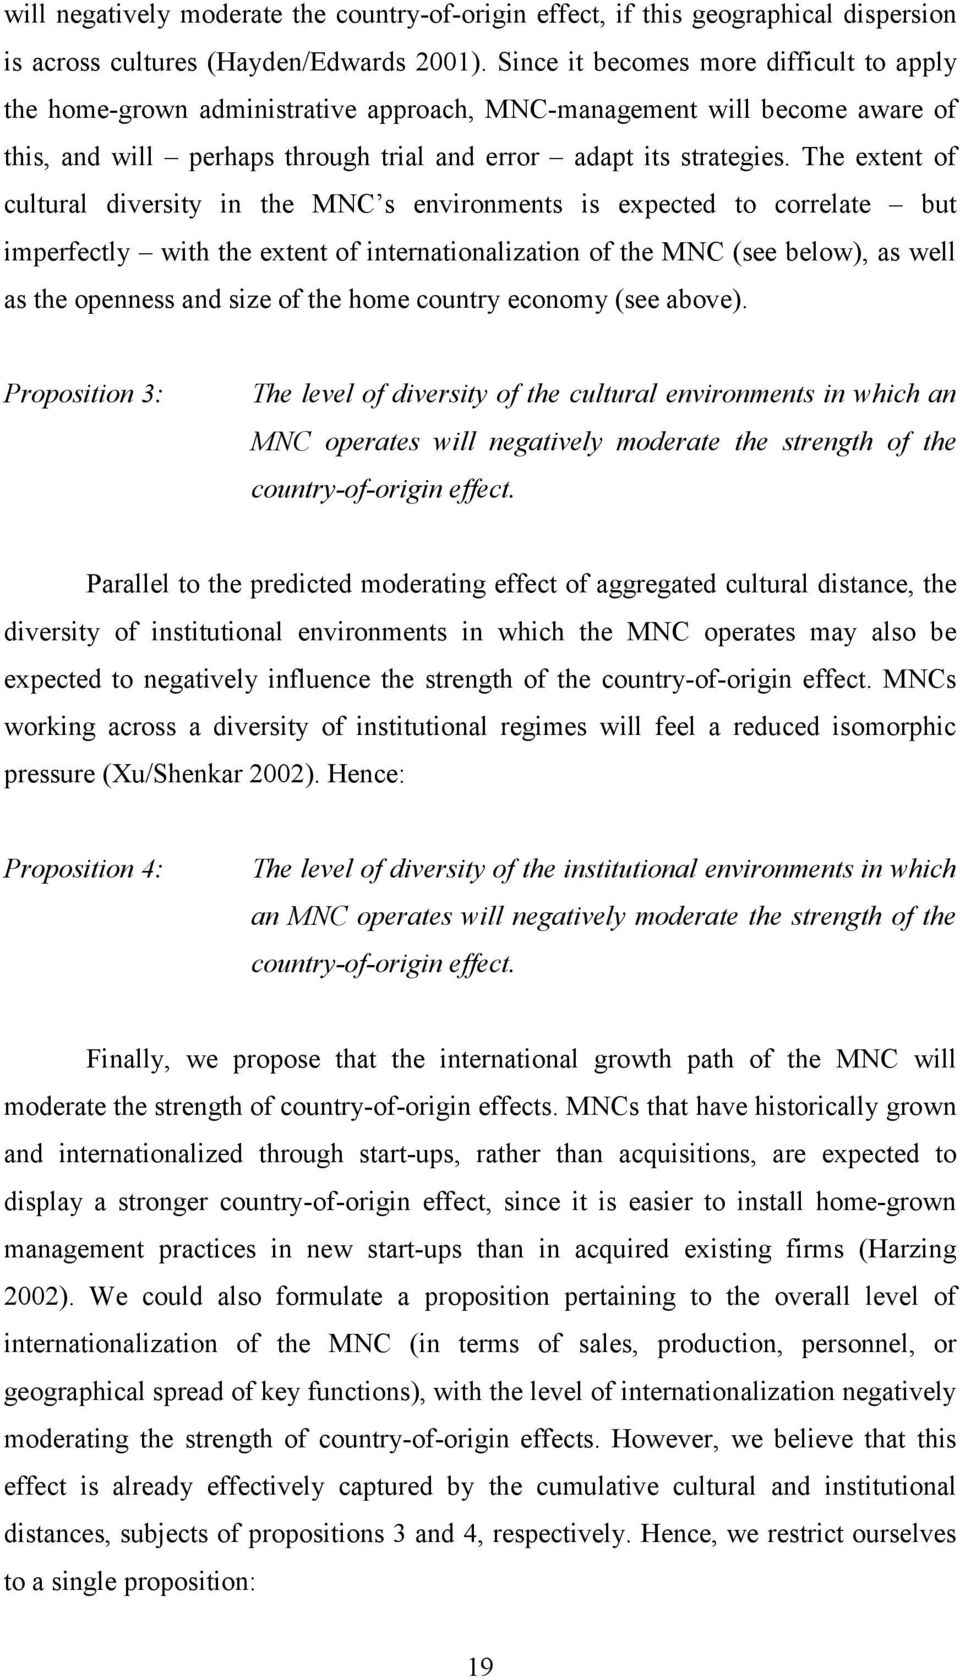 The extent of cultural diversity in the MNC s environments is expected to correlate but imperfectly with the extent of internationalization of the MNC (see below), as well as the openness and size of